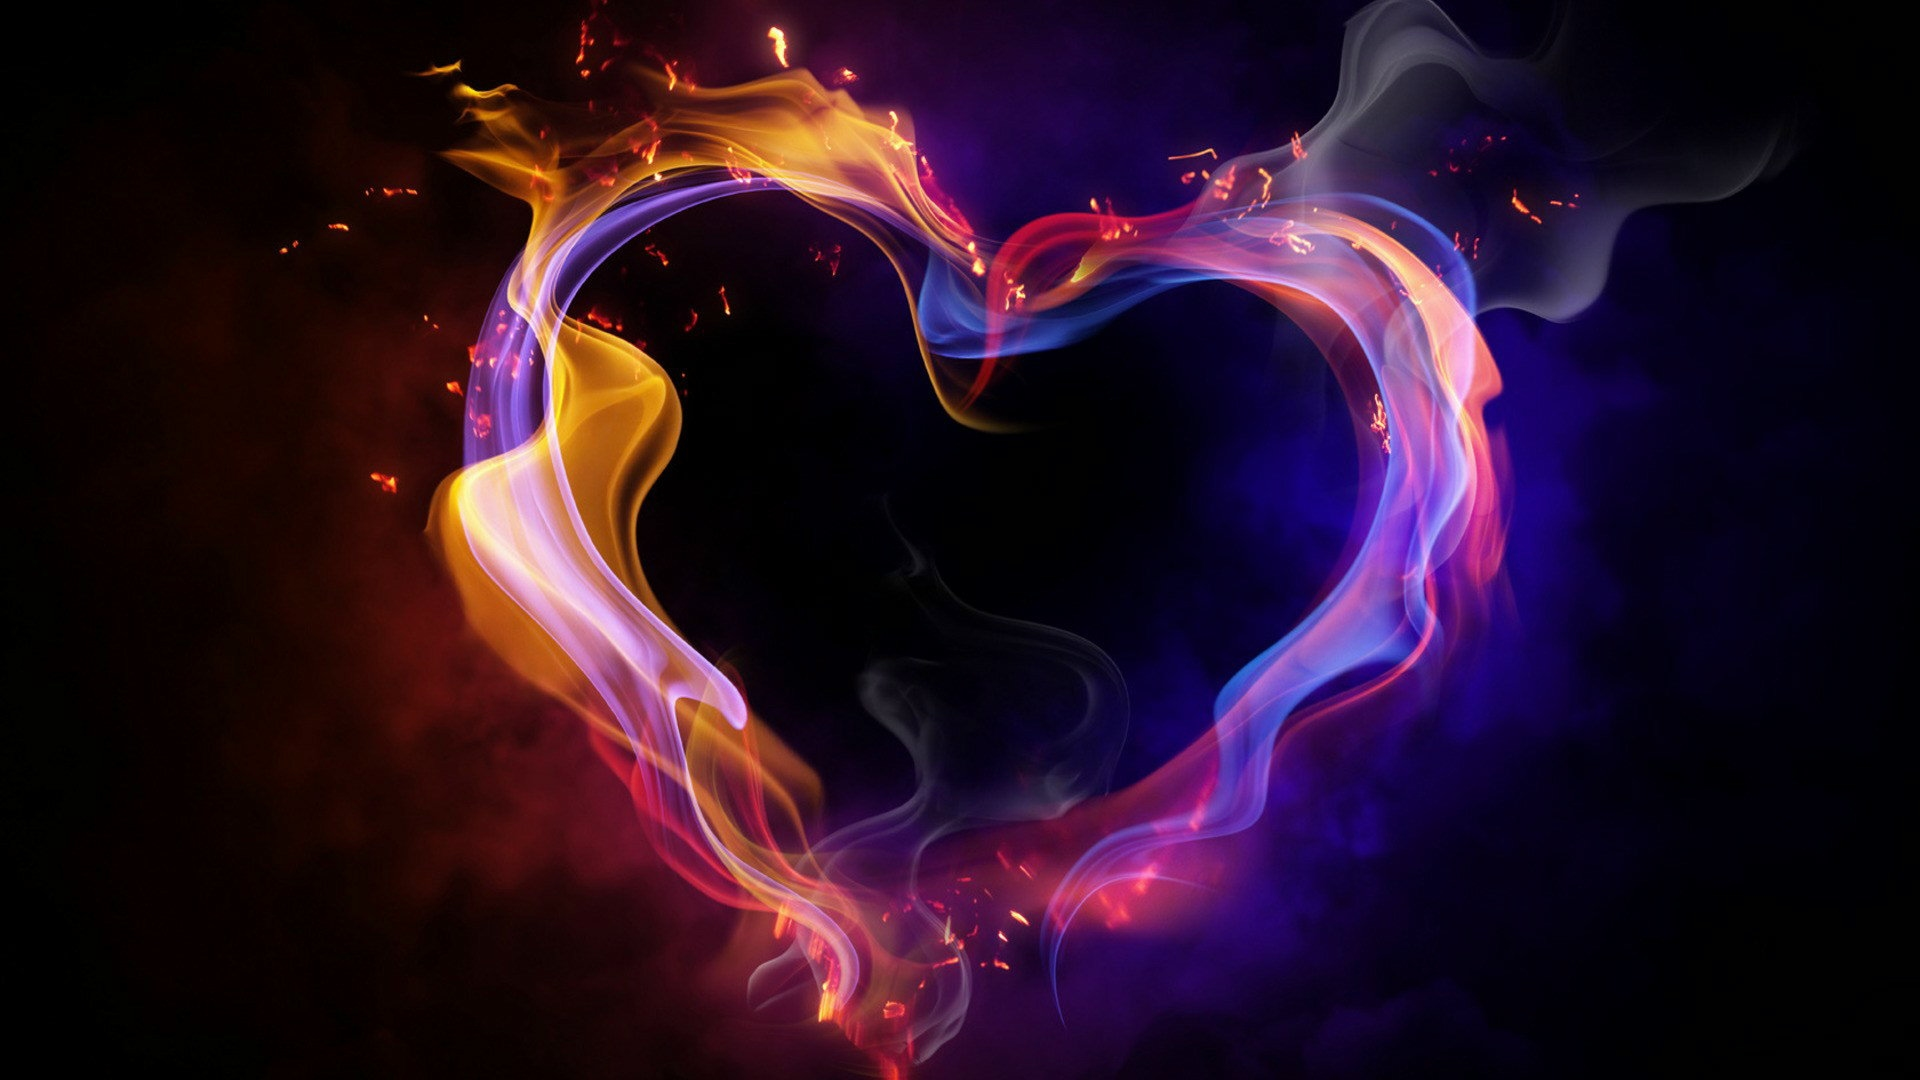 Hd Cool Color Abstract Heart